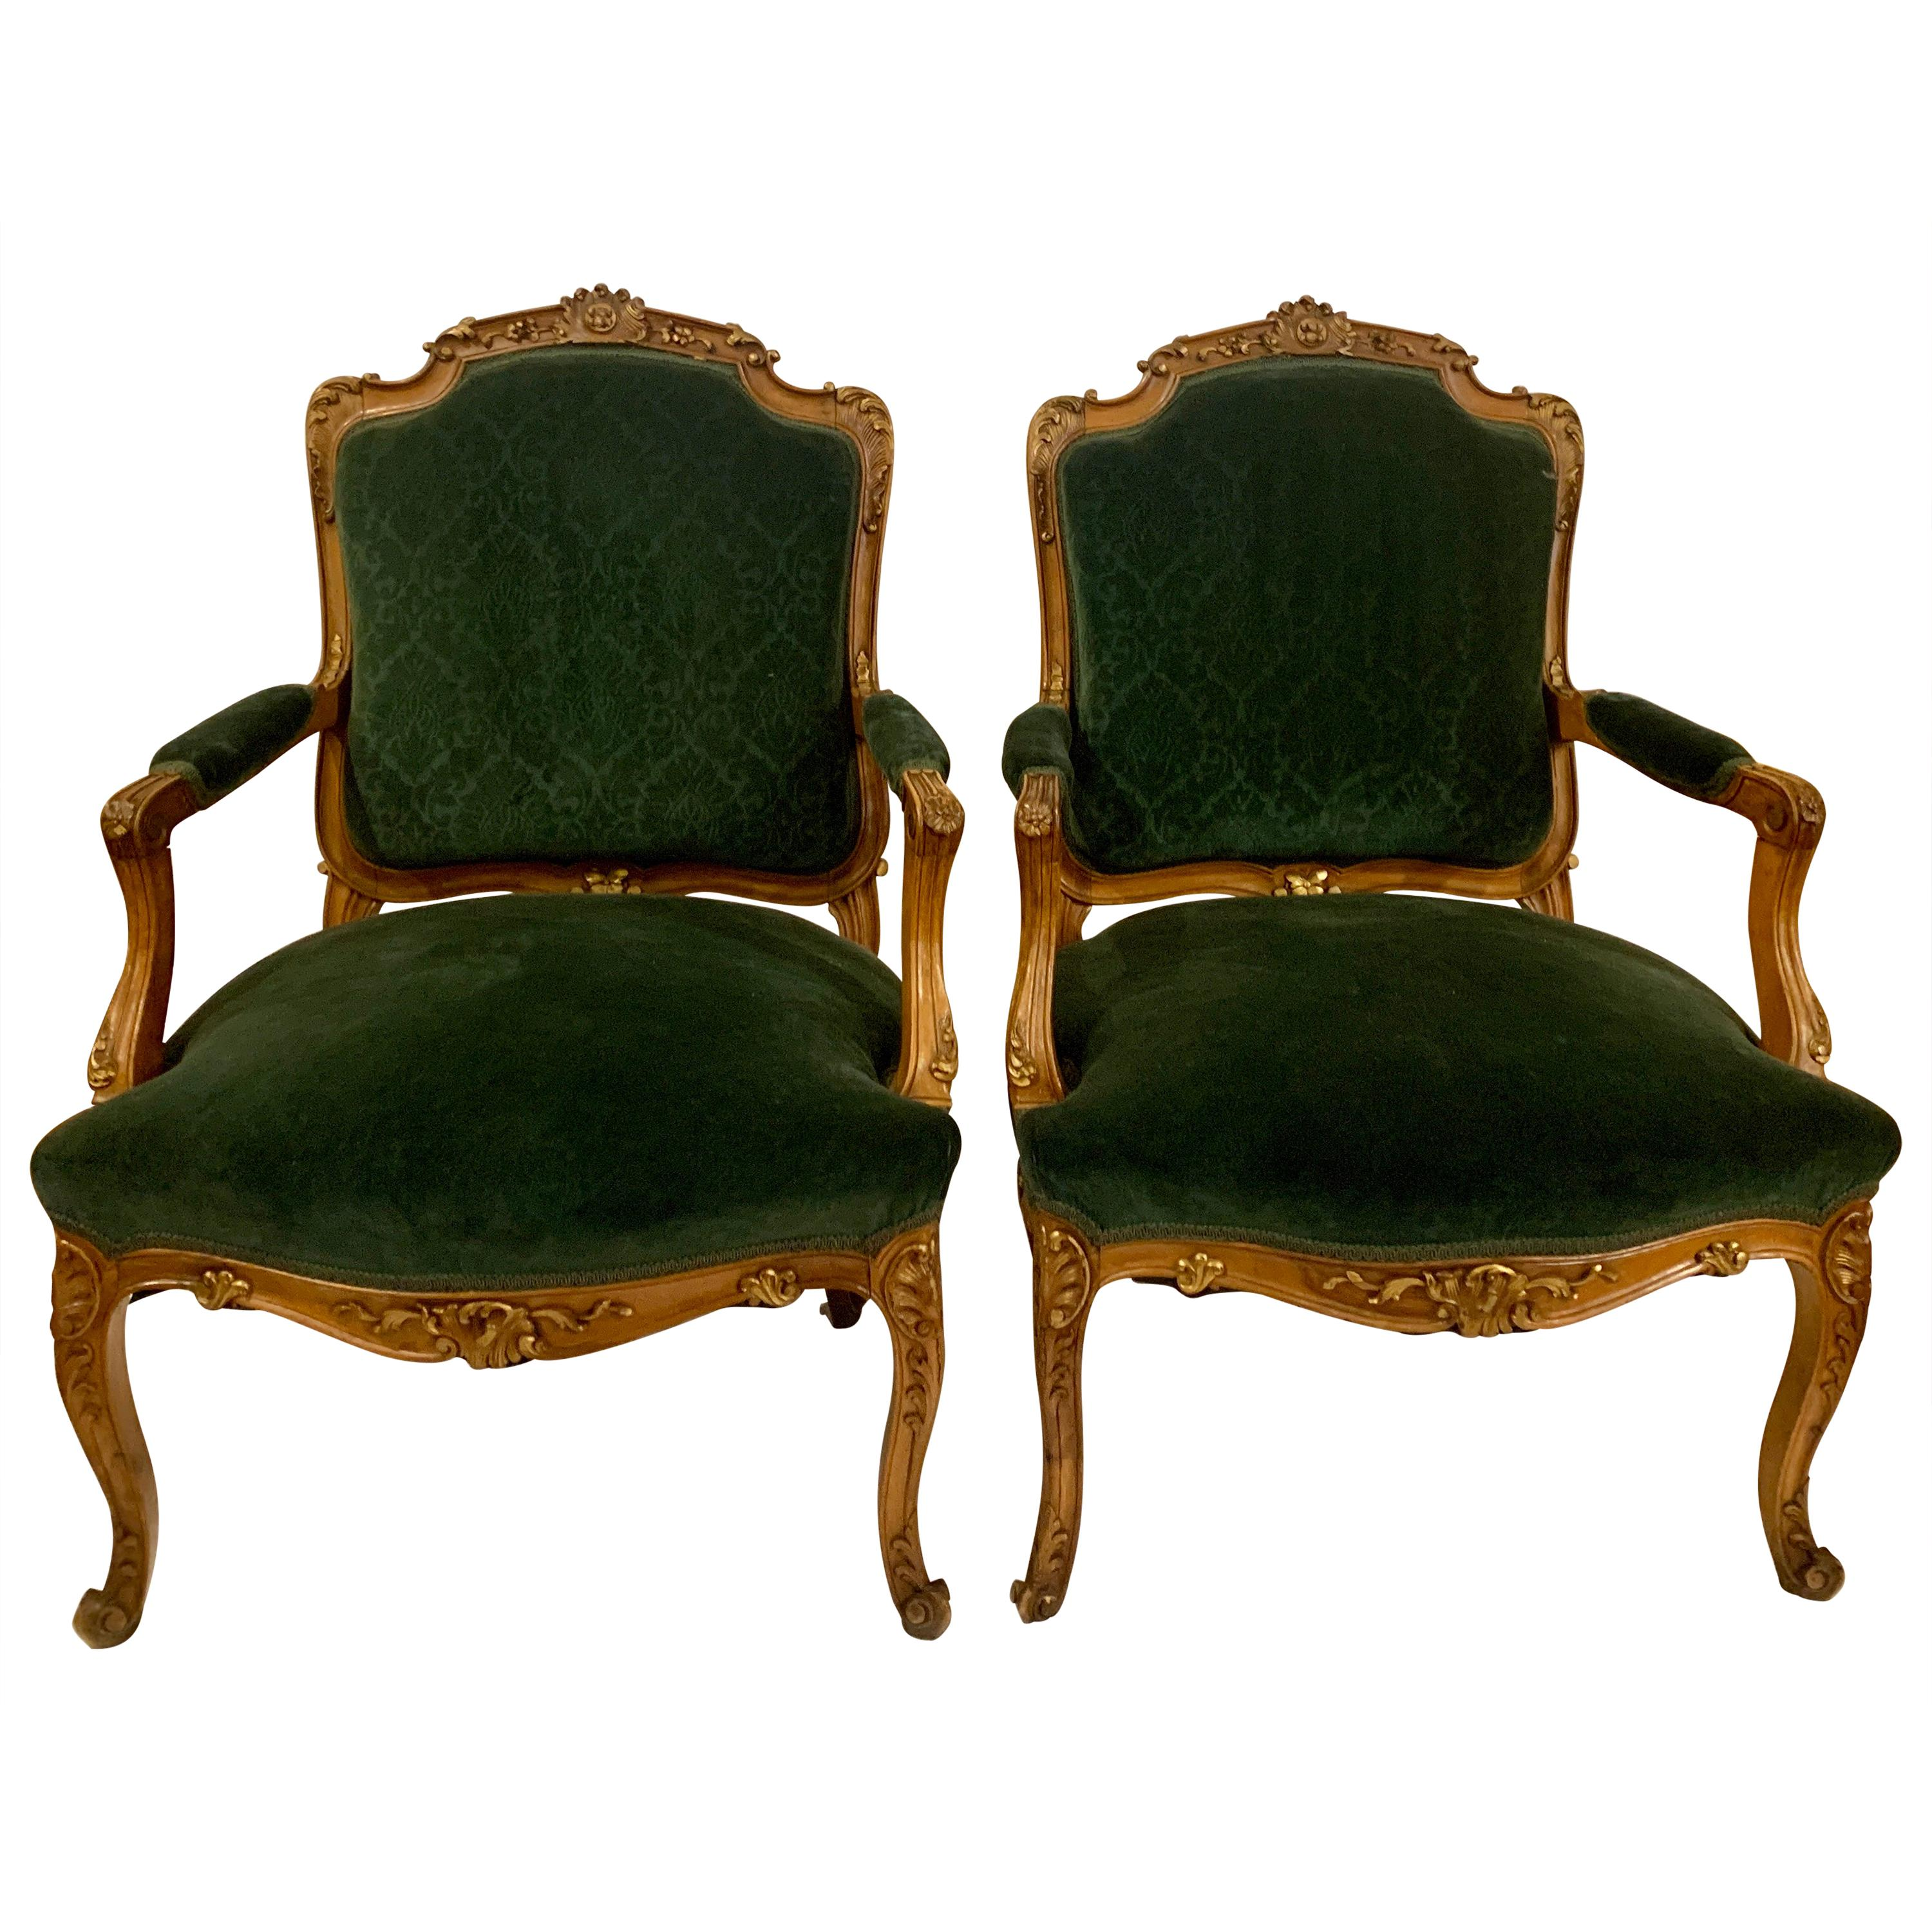 Pair of Antique Late 19th Century French Walnut Armchairs